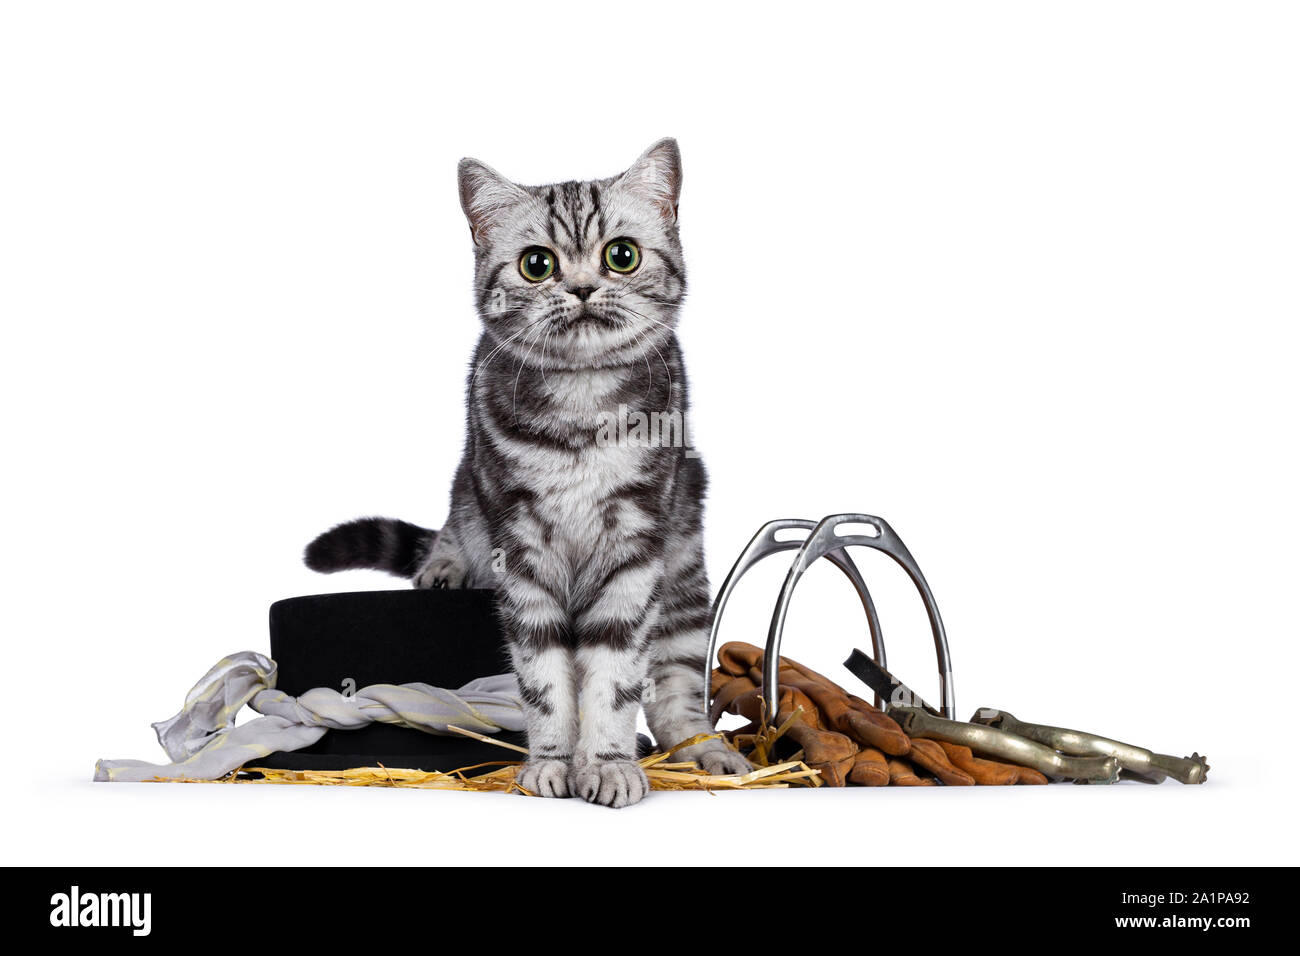 Cute Silver Tabby Blotched British Shorthair Kitten Sitting Facing Front On Horse Riding Gear Looking Straight At Camera Isolated On White Backgroun Stock Photo Alamy